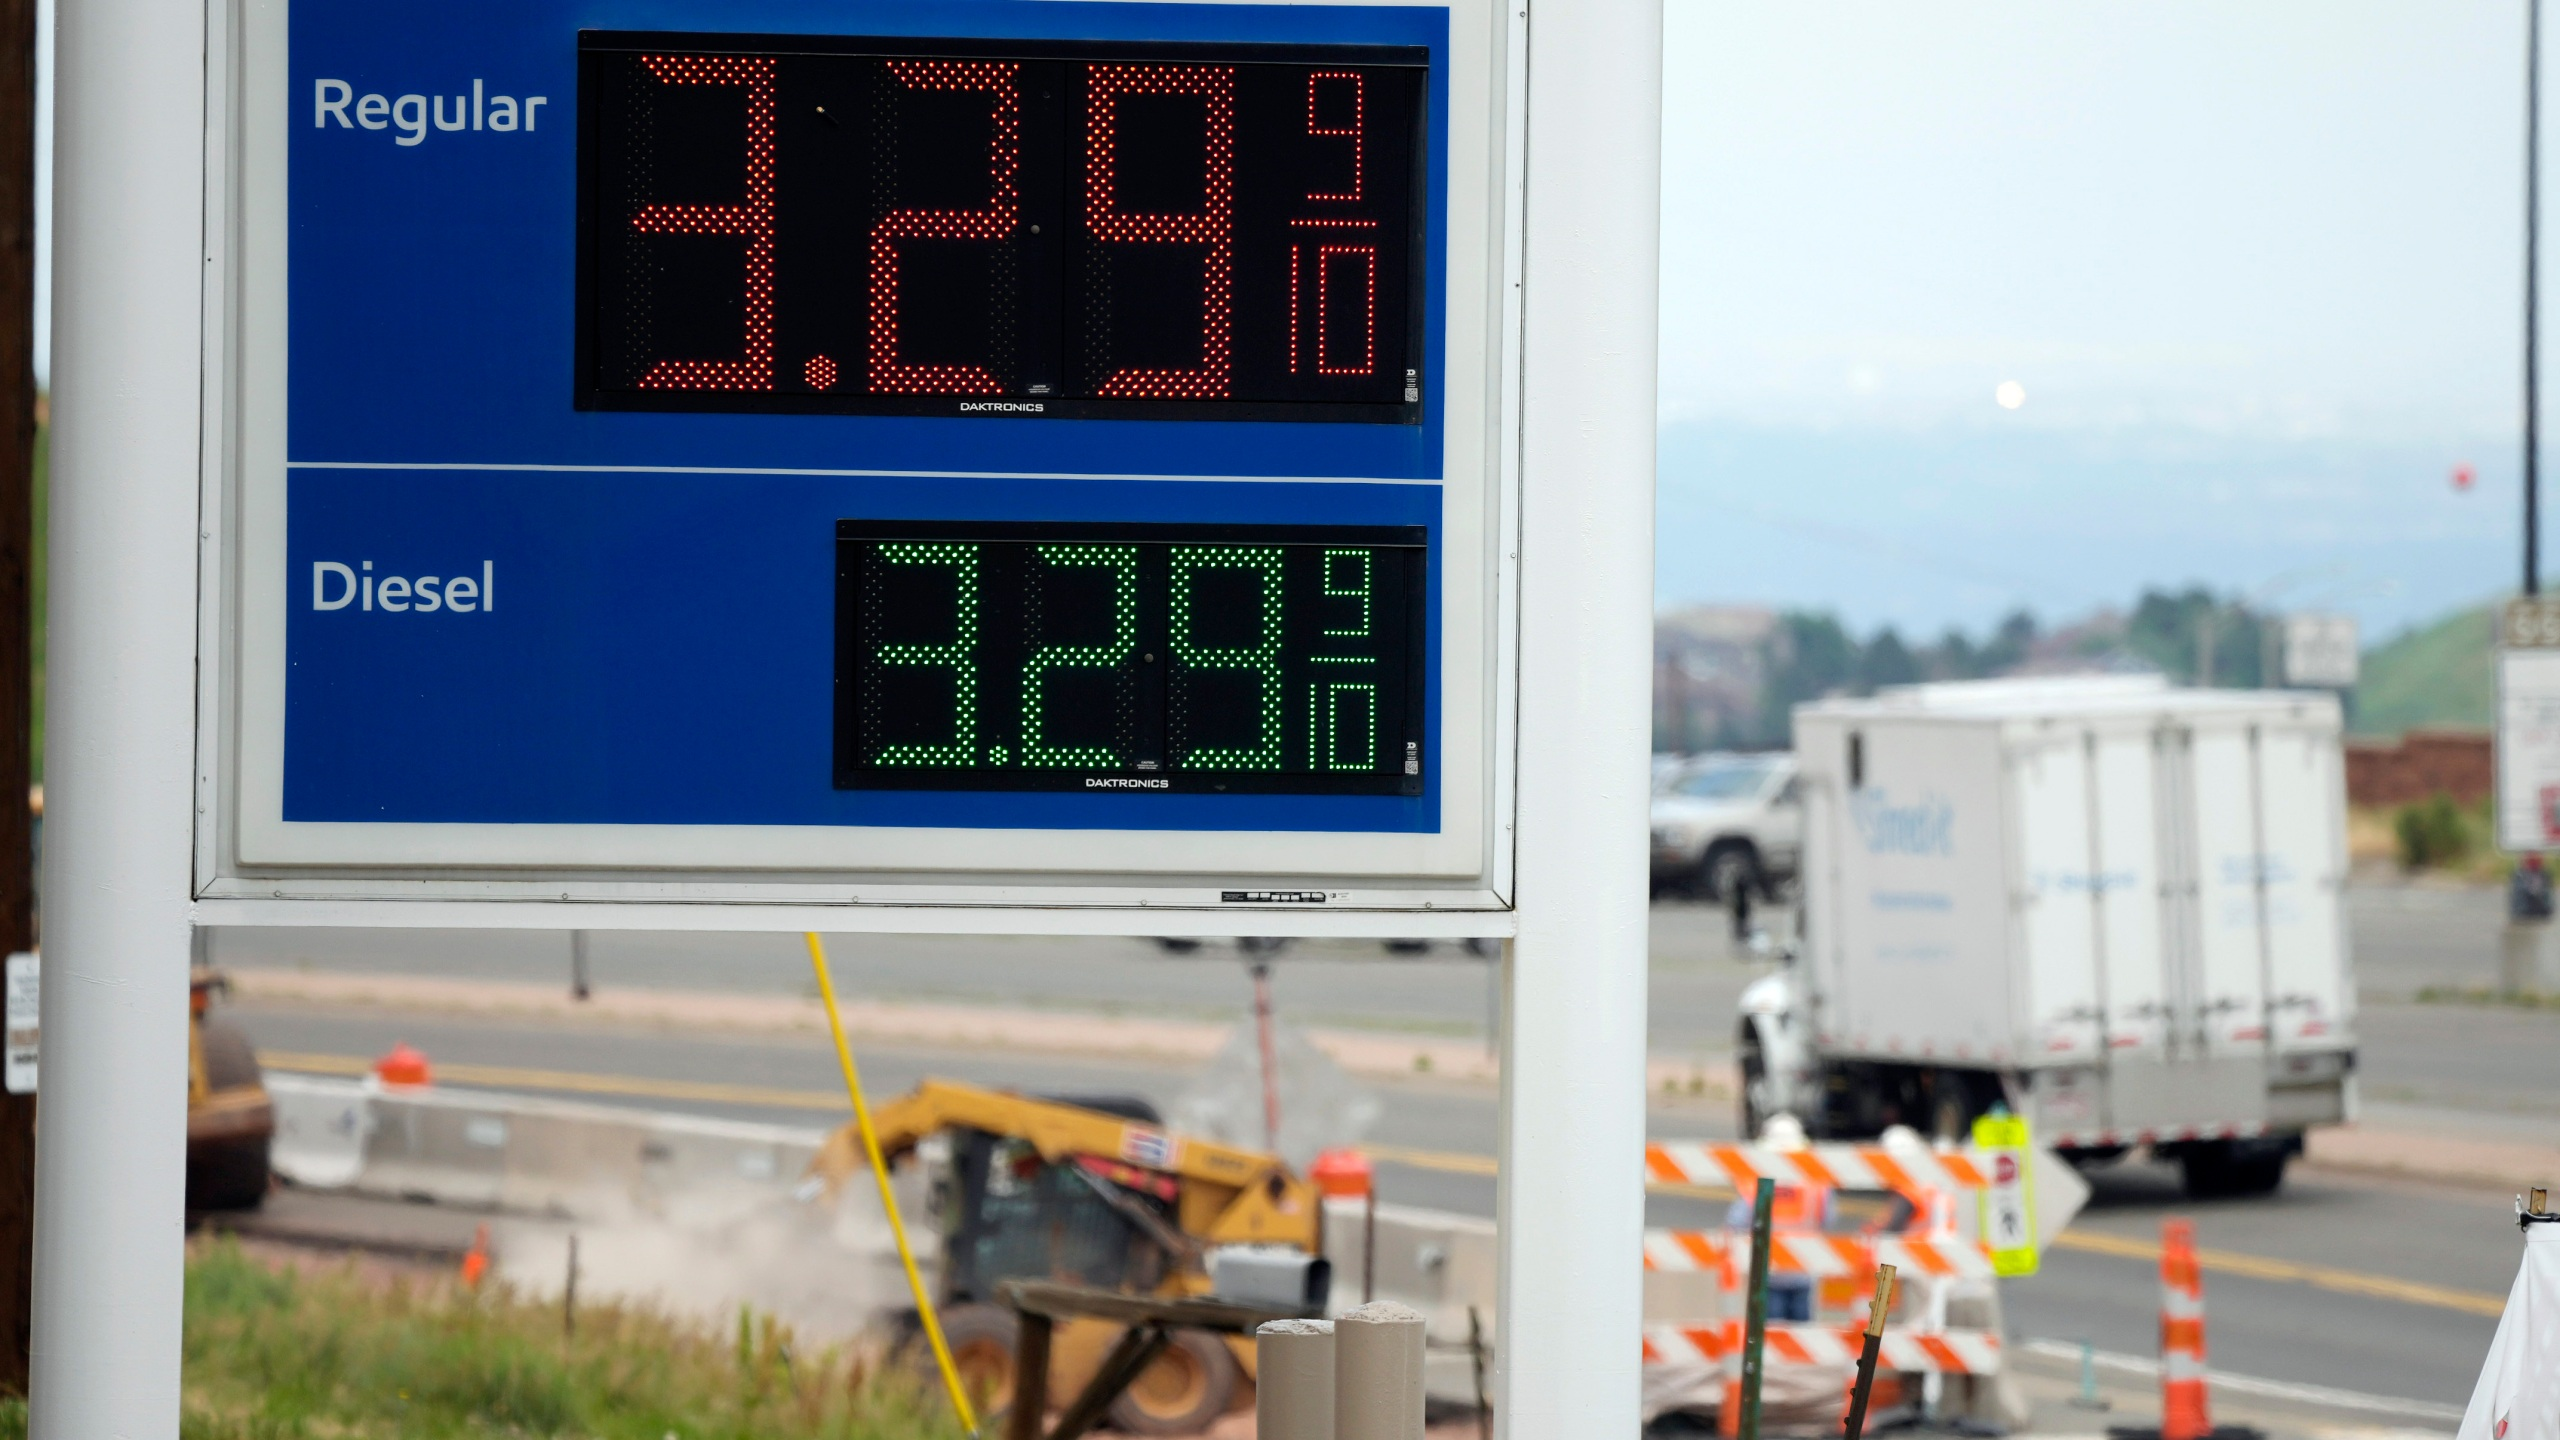 FILE - In this Thursday, July 1, 2021, file photo, the gasoline prices are displayed on a sign as motorists head east along a frontage road parallel to Interstate 70 to get an early start on the Fourth of July holiday weekend near Golden, Colo. Drivers are facing pricier fill-ups as more people hit the road for work, travel and other activities that the virus pandemic halted. (AP Photo/David Zalubowski, File)